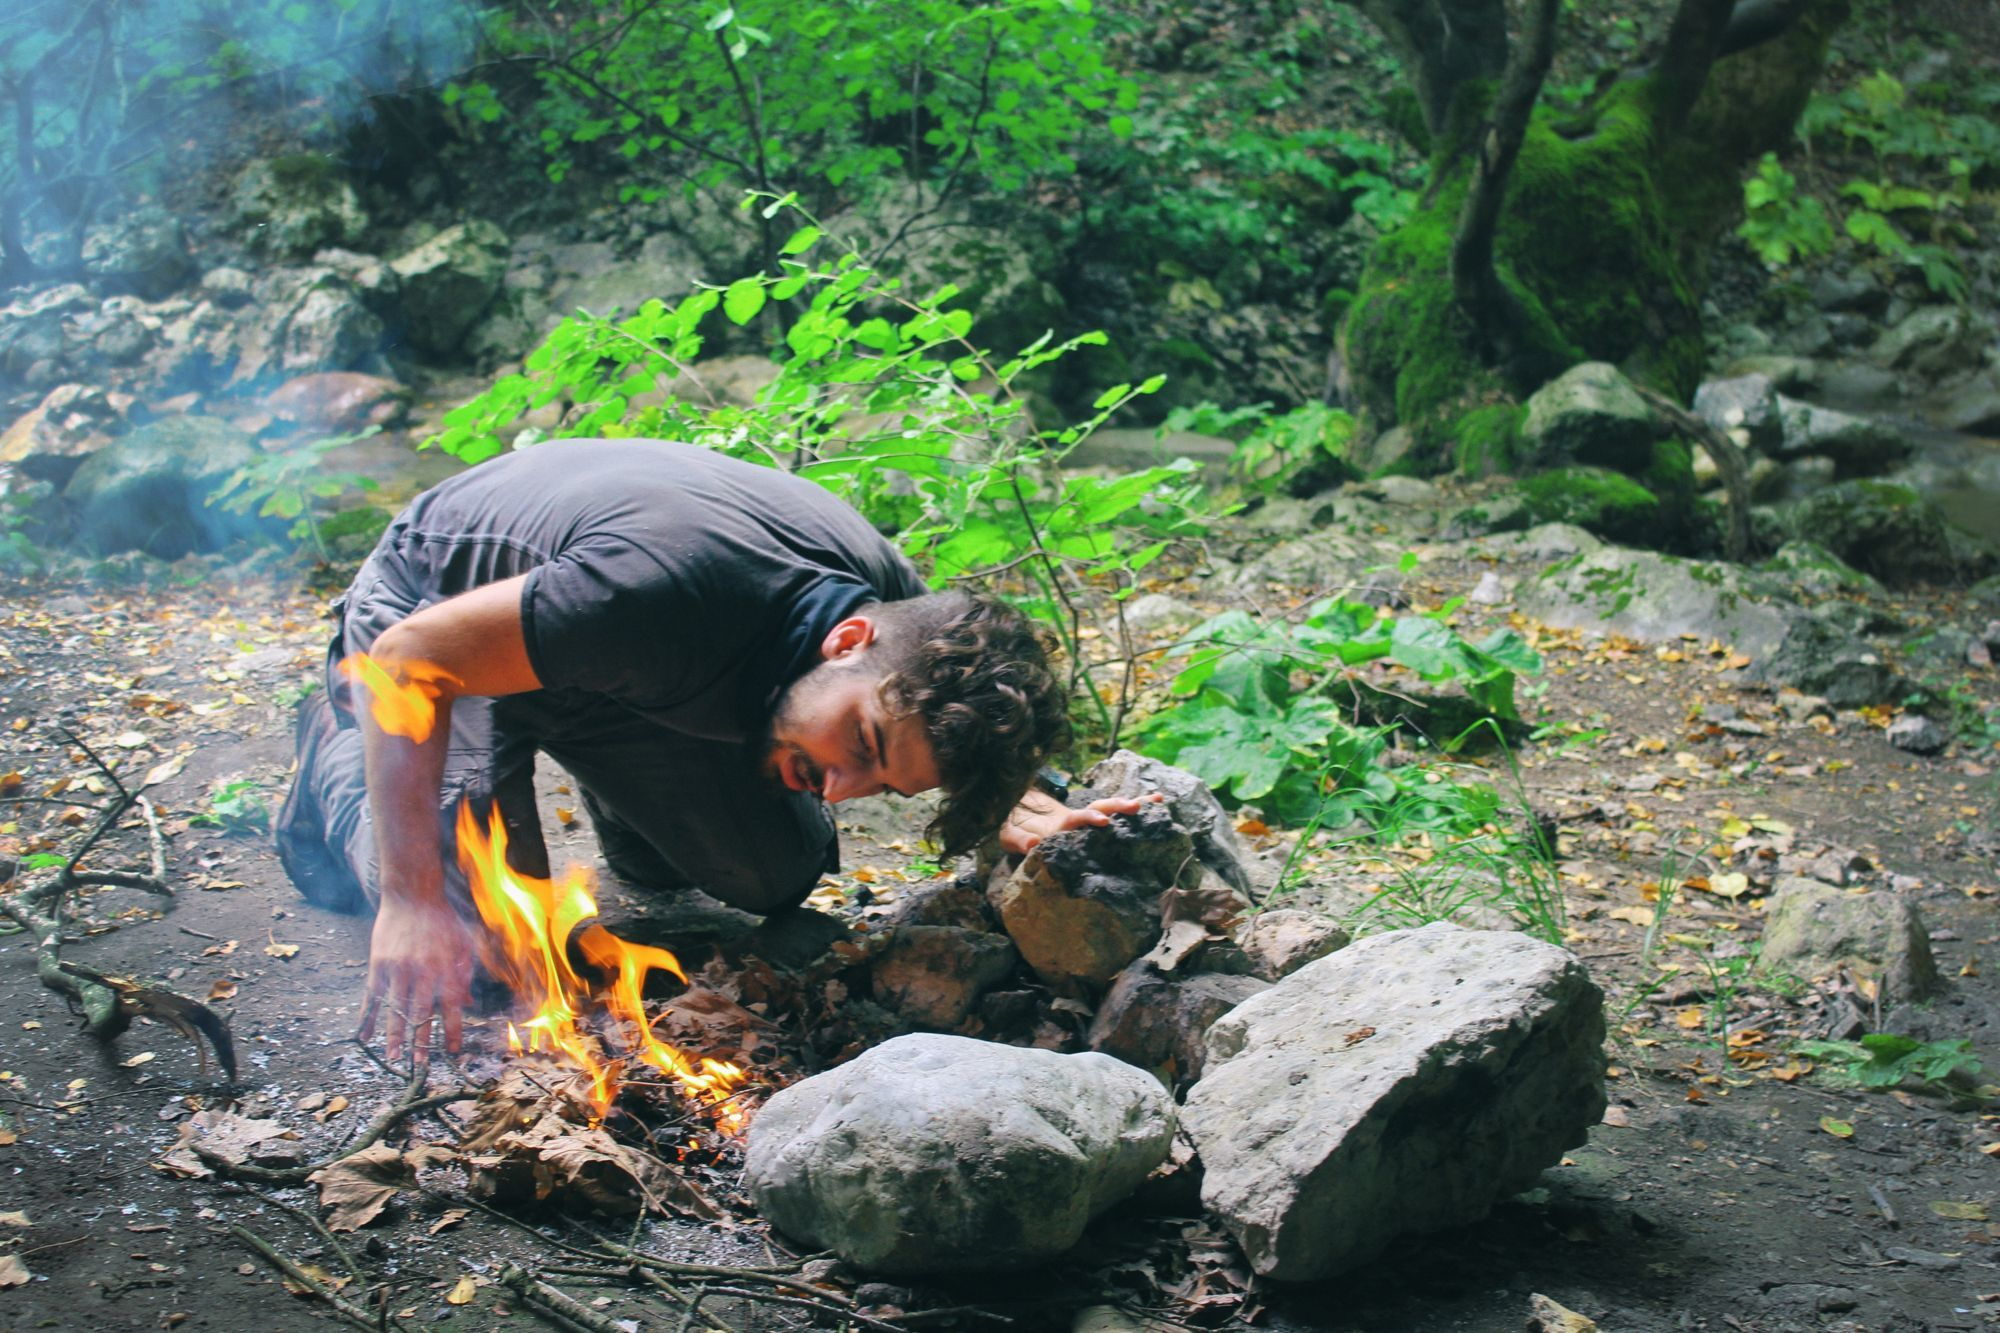 Man starting a fire in the wilderness